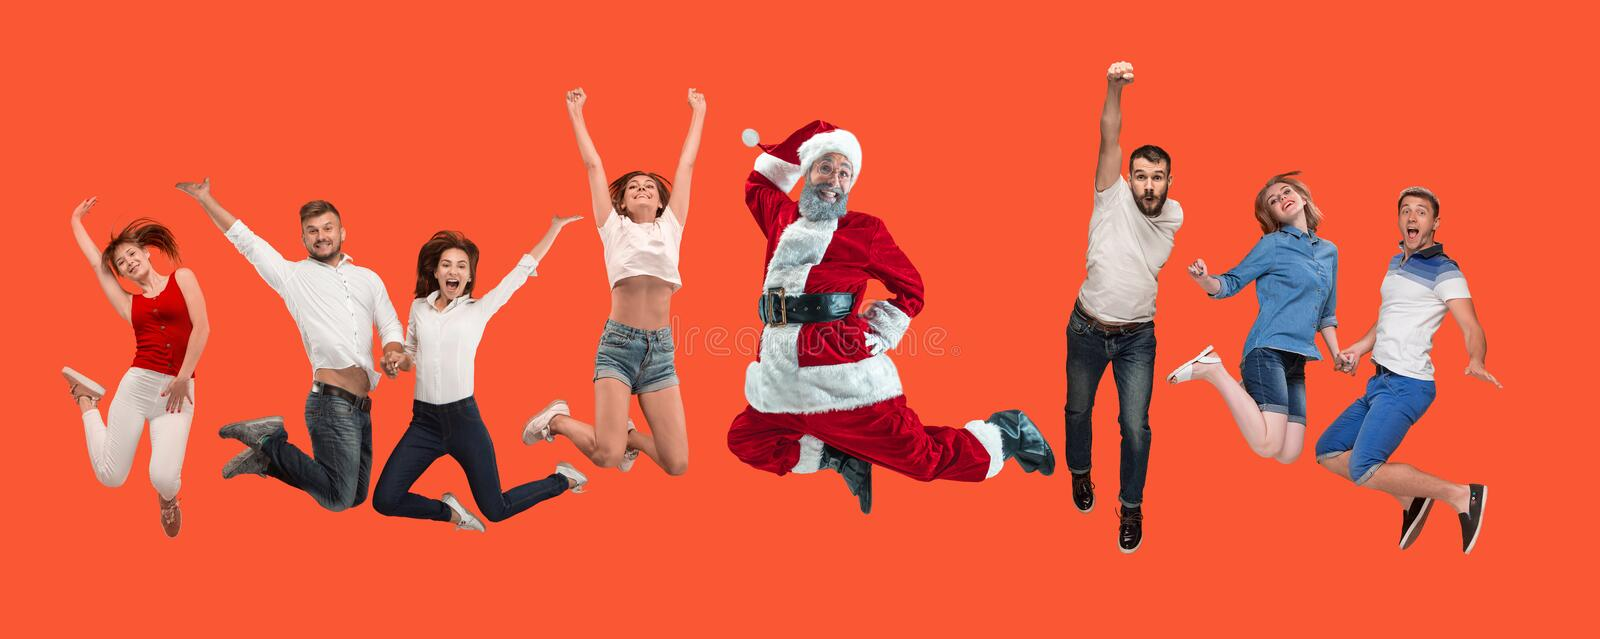 Freedom in moving. young man and women jumping against red background royalty free stock image